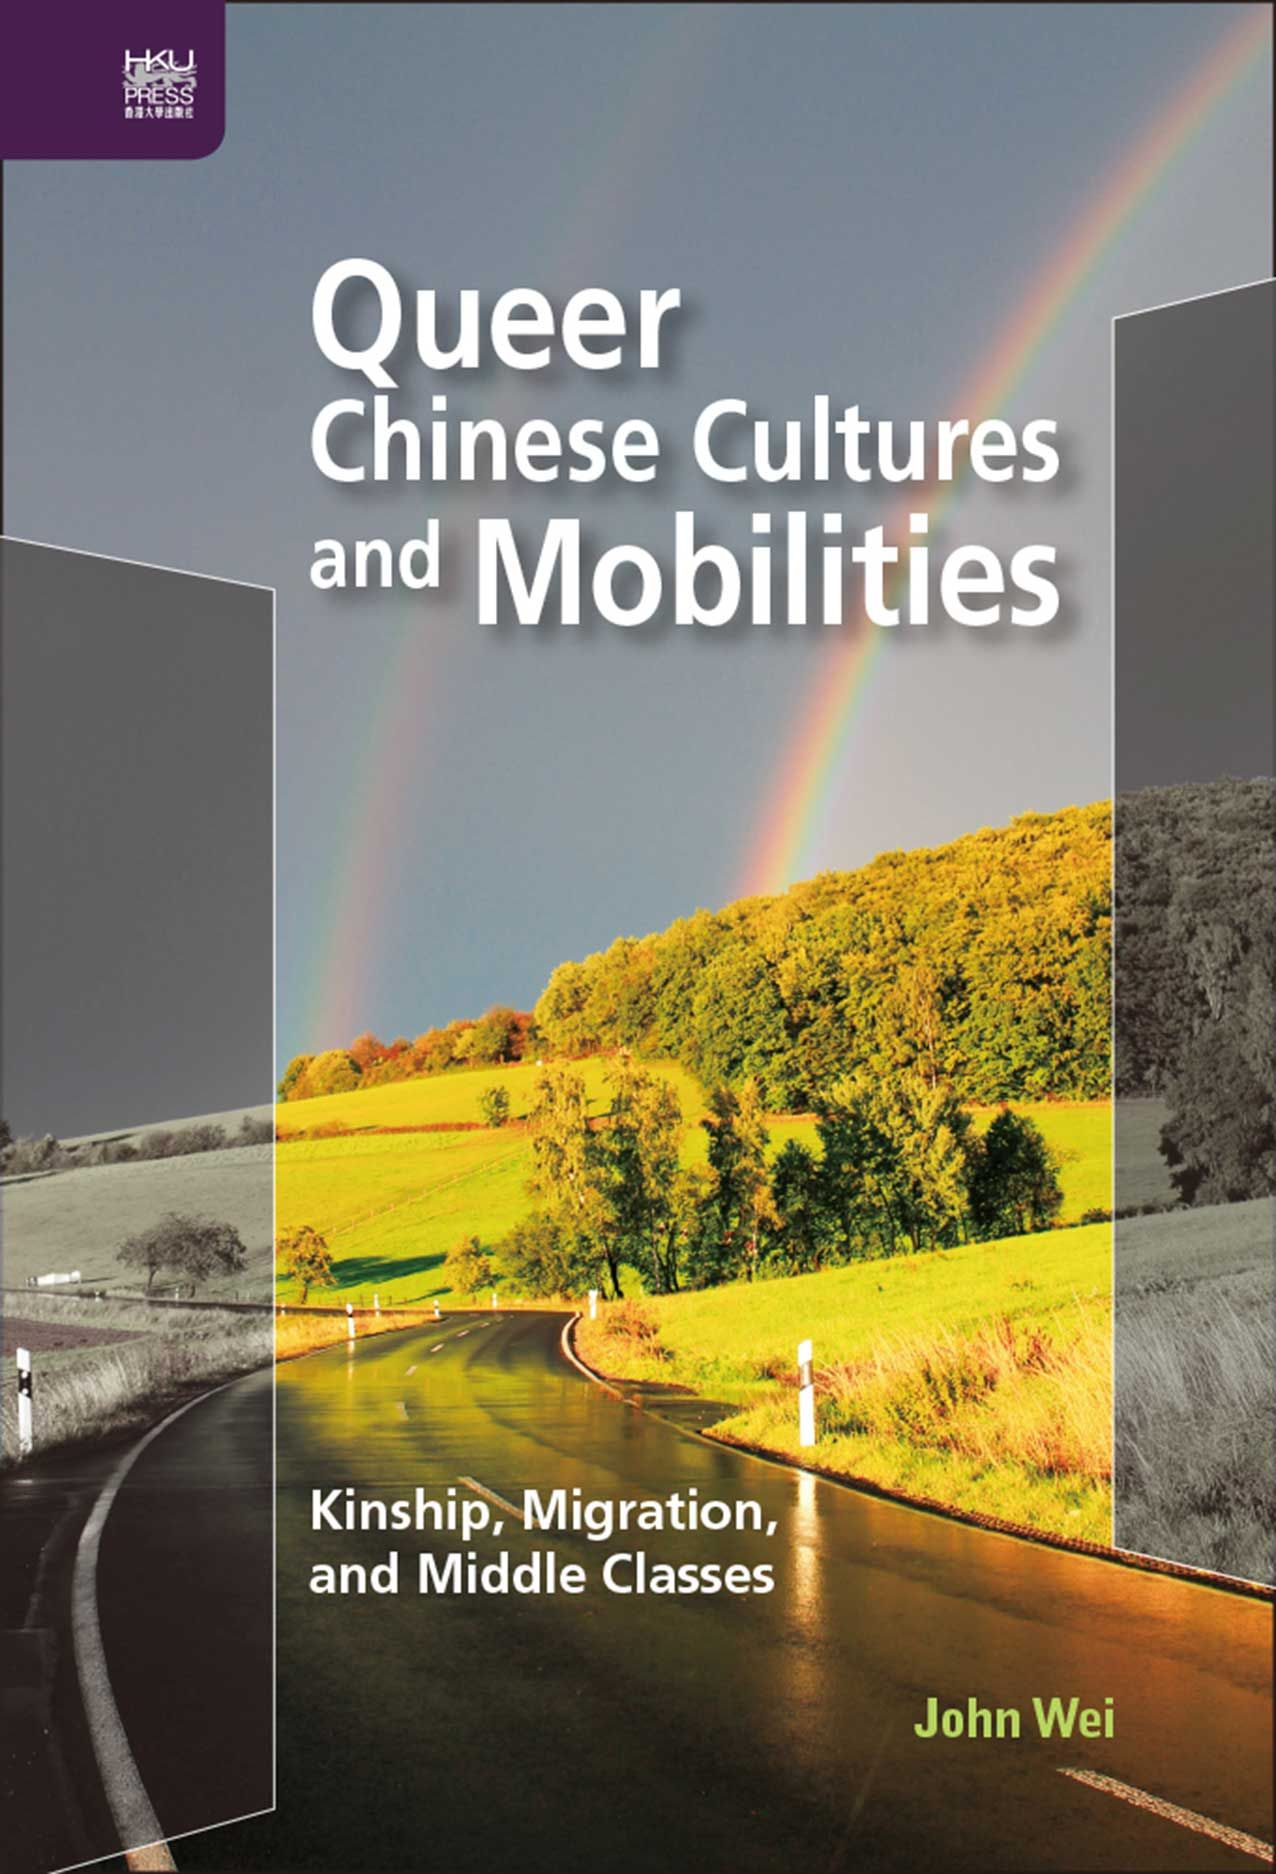 Queer Chinese Cultures and Mobilities